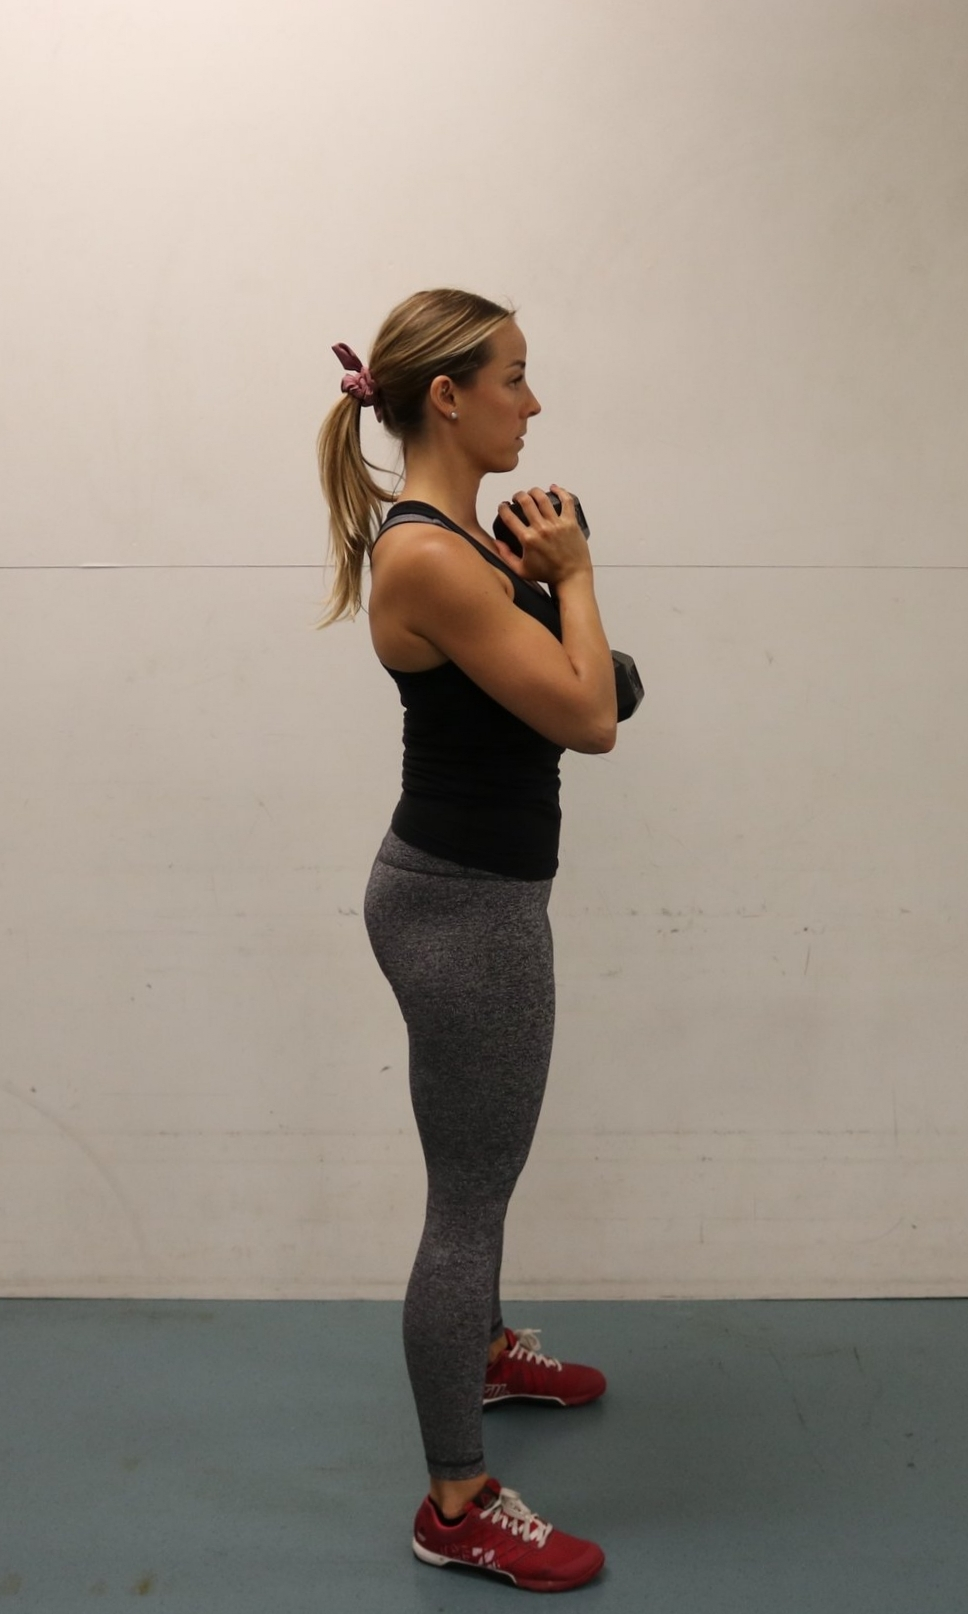 Top position of the squat